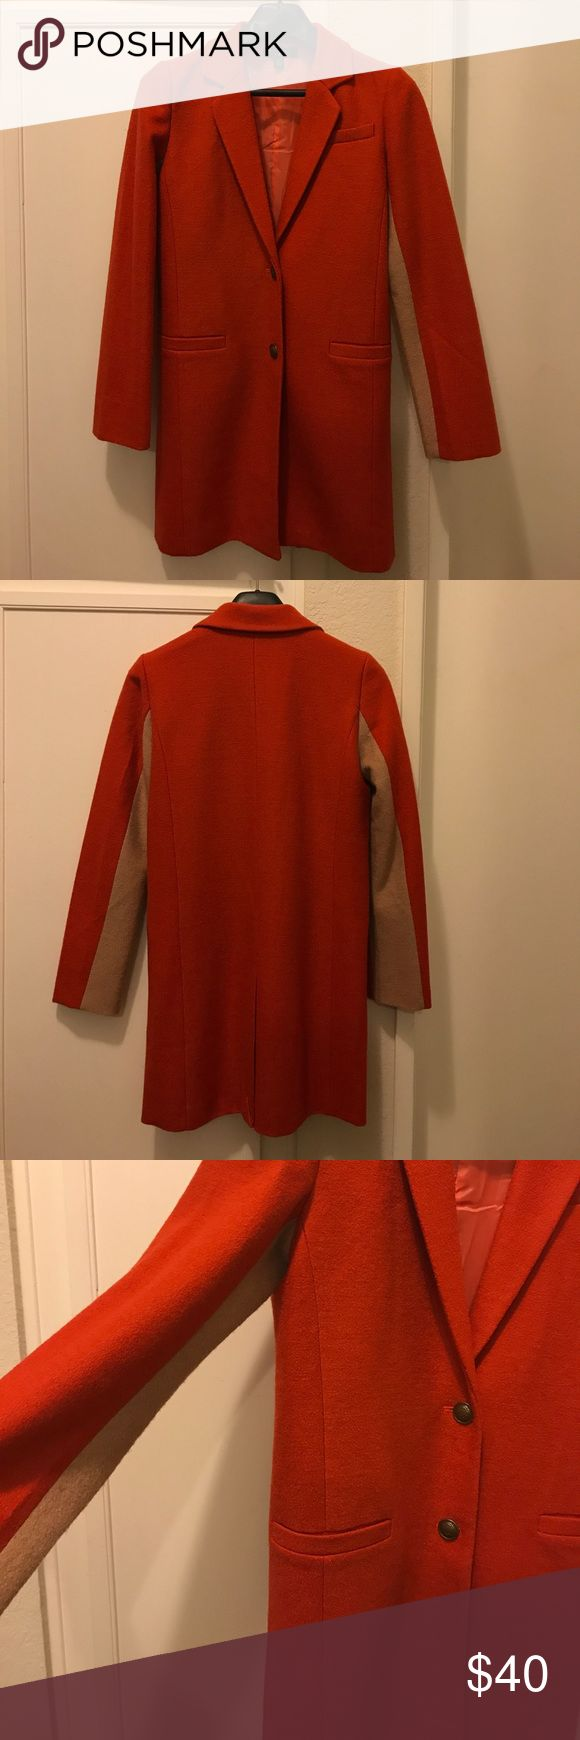 Anthropologie Burnt Orange Wool Blazer This slim-fitting, wool blazer with two-toned sleeves from Anthropologie is in excellent shape. It will make an excellent addition to your fall wardrobe! Anthropologie Jackets & Coats Blazers